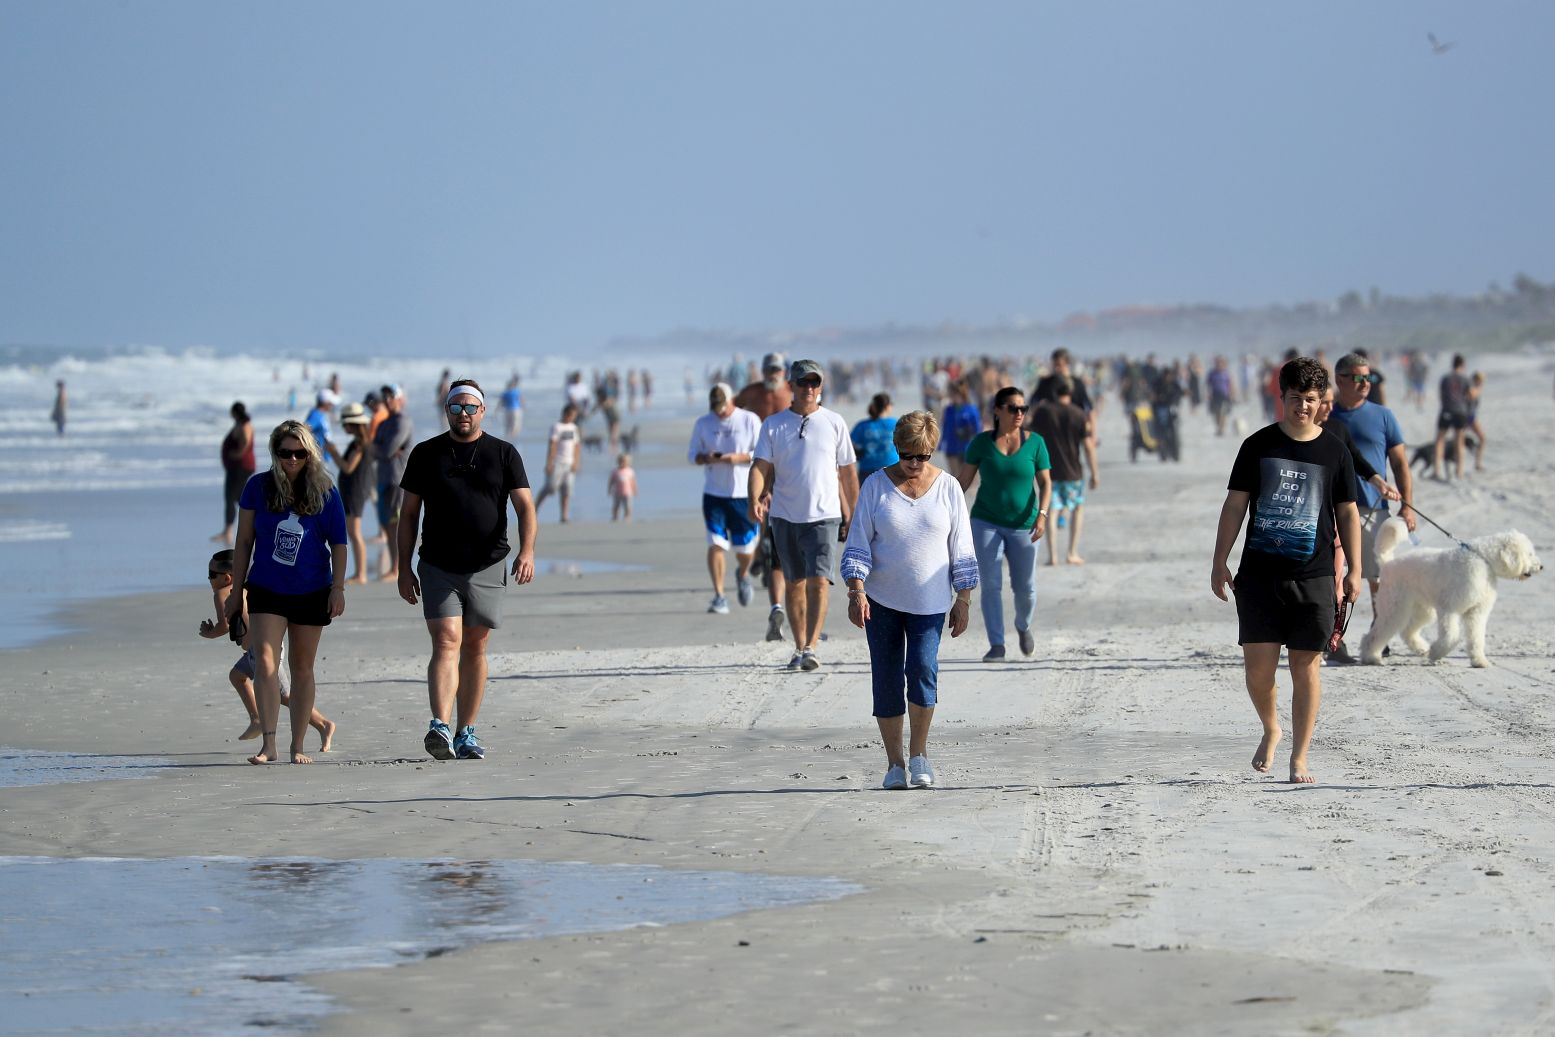 People are seen at the beach in Jacksonville Beach